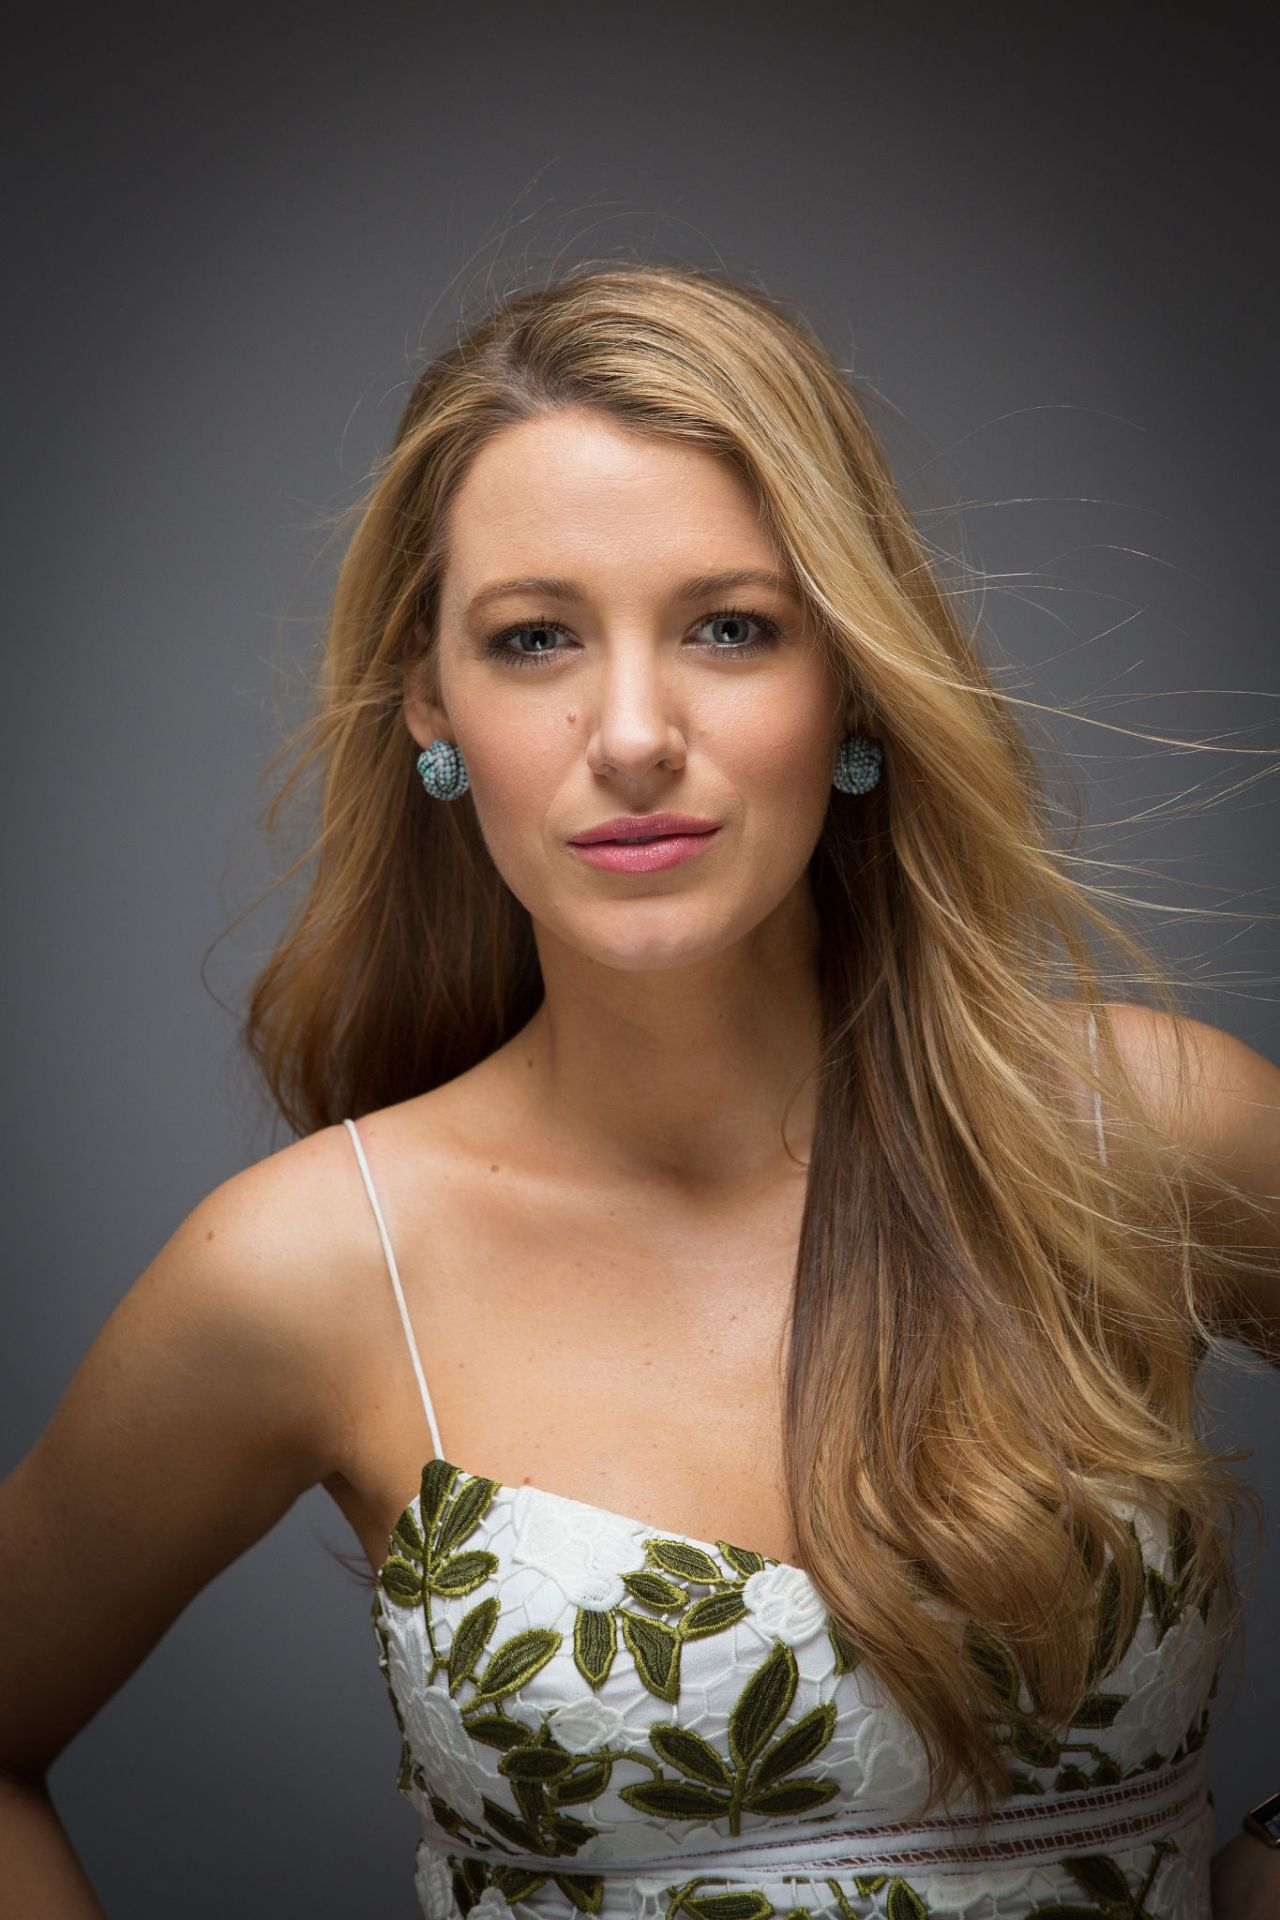 Blake Lively - Photoshoot for the Film Cafe Society